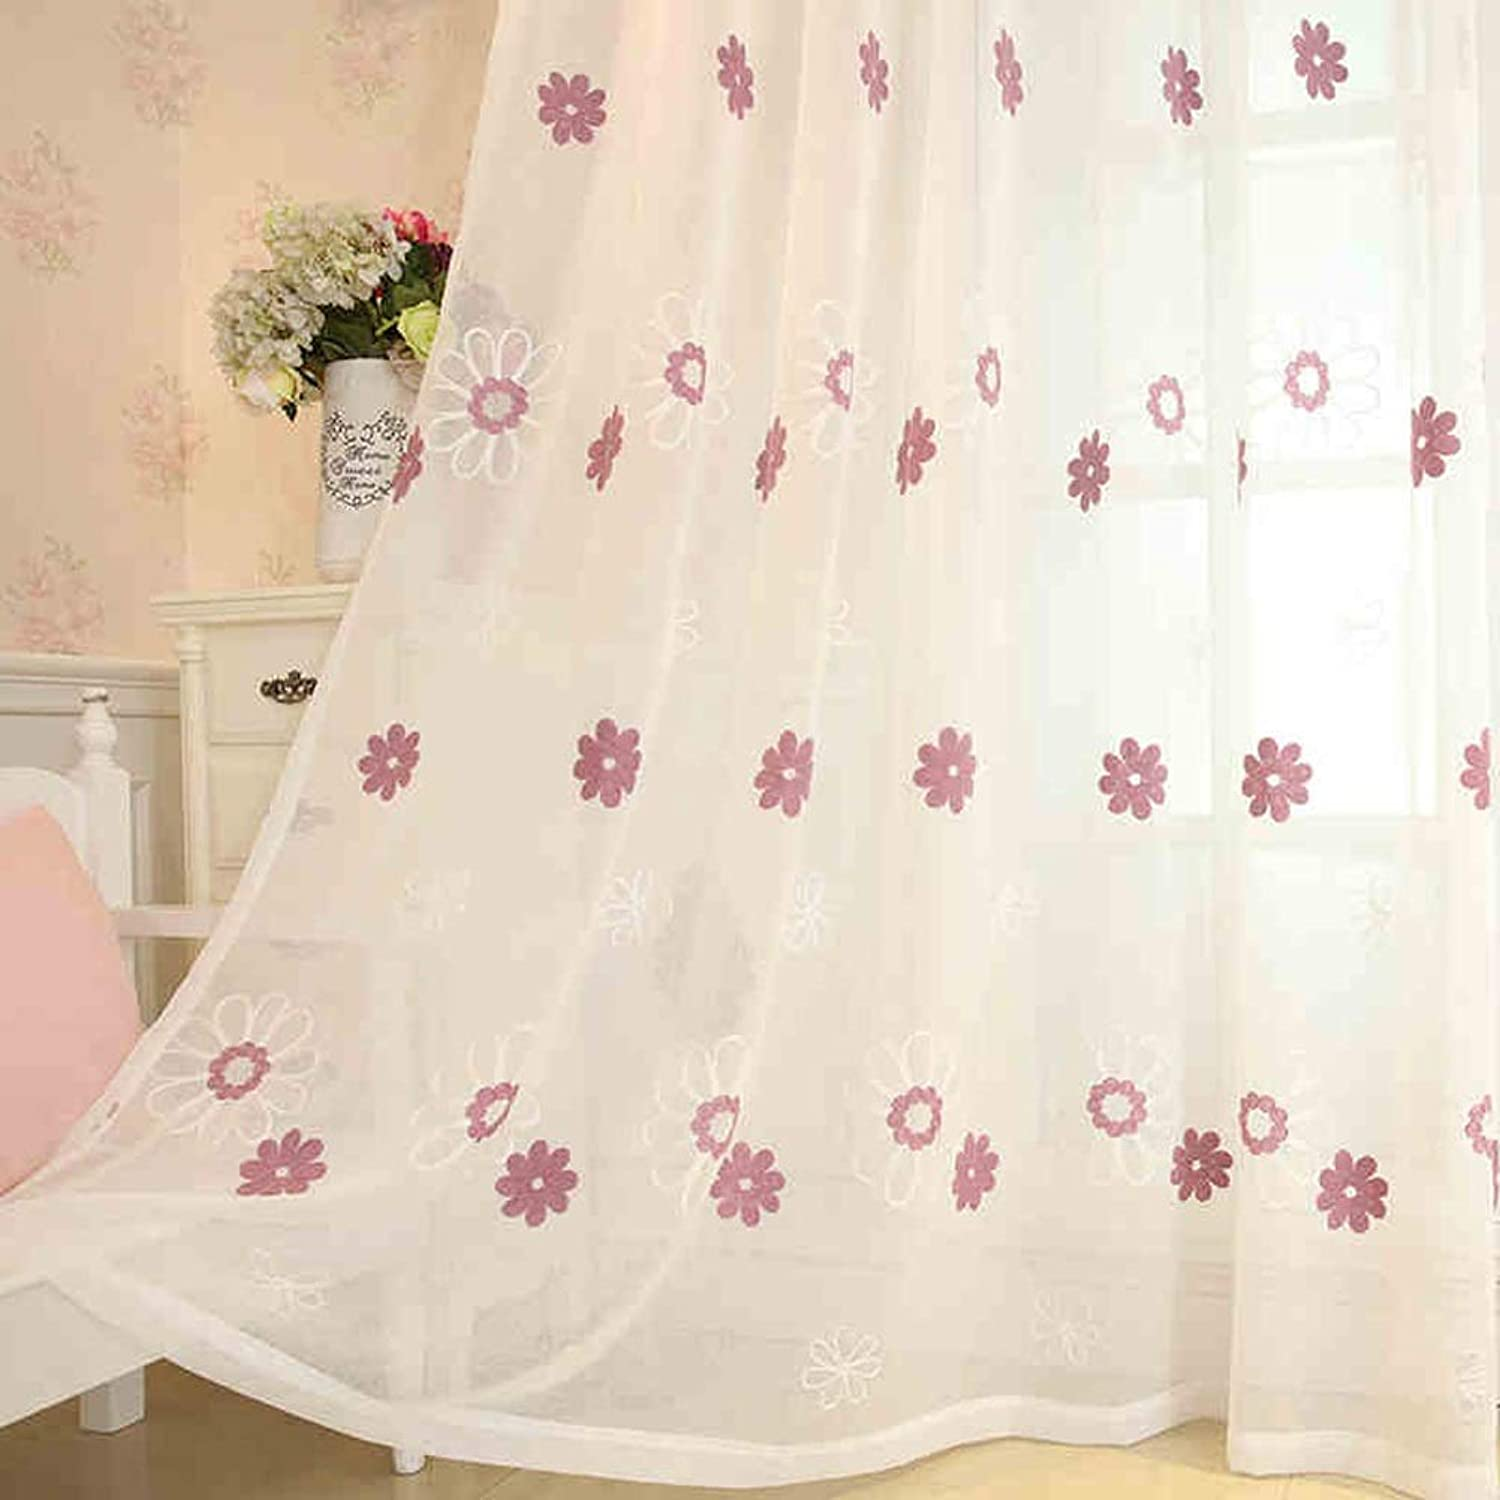 WAN SAN QIAN- Simple Hook Window Curtain - Embroidered Window Screen Bedroom Bay Window Curtains curtain (Size   100x260cm)